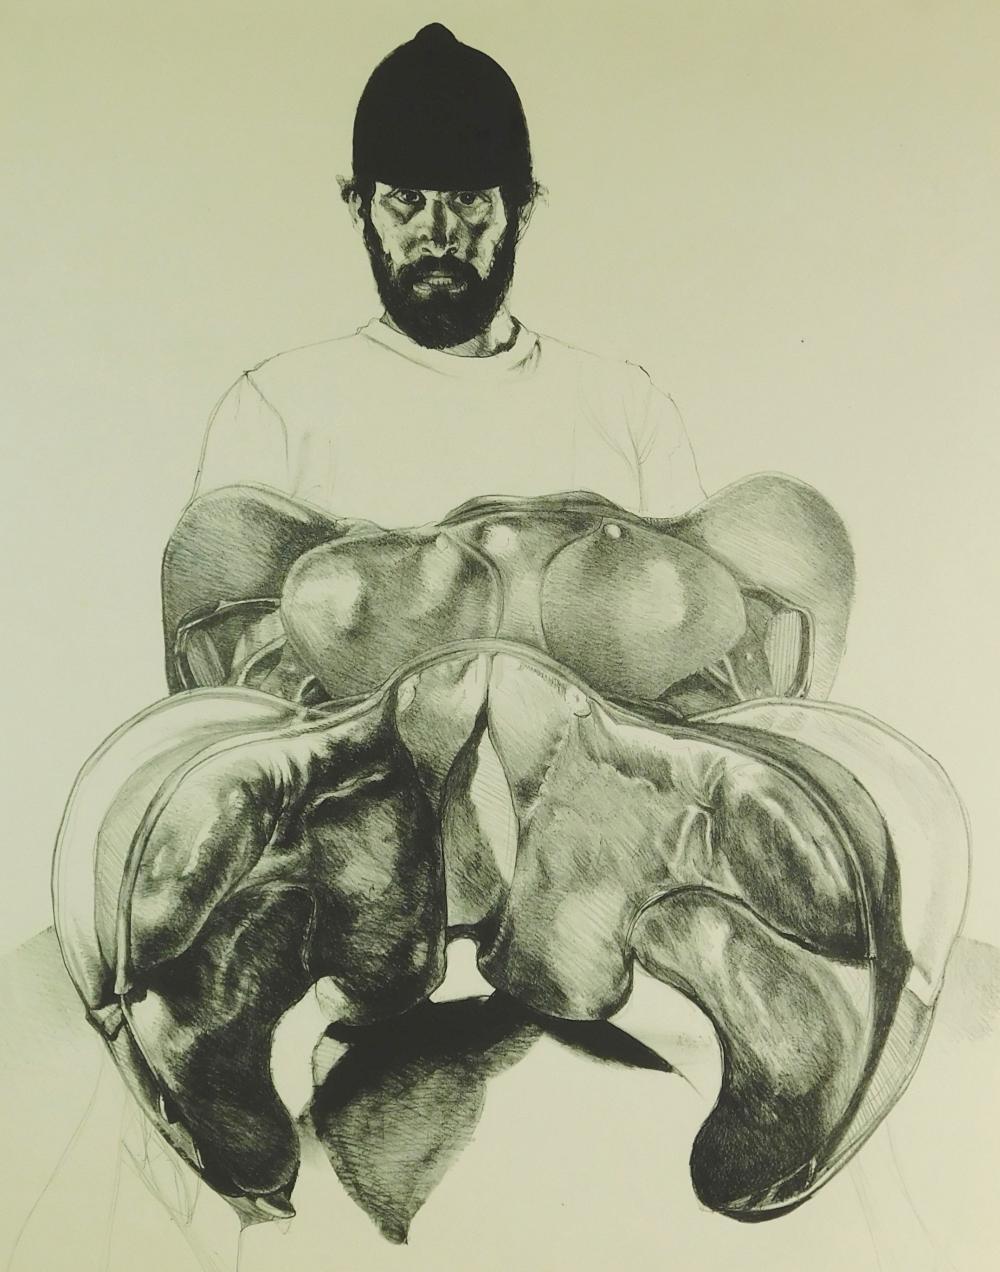 Sigmund Abeles (United States) b. 1934. Self-Portrait with Saddles. Lithograph, 1972. Ed: 50. Signed with pencil, l.r. Inscribed wit...